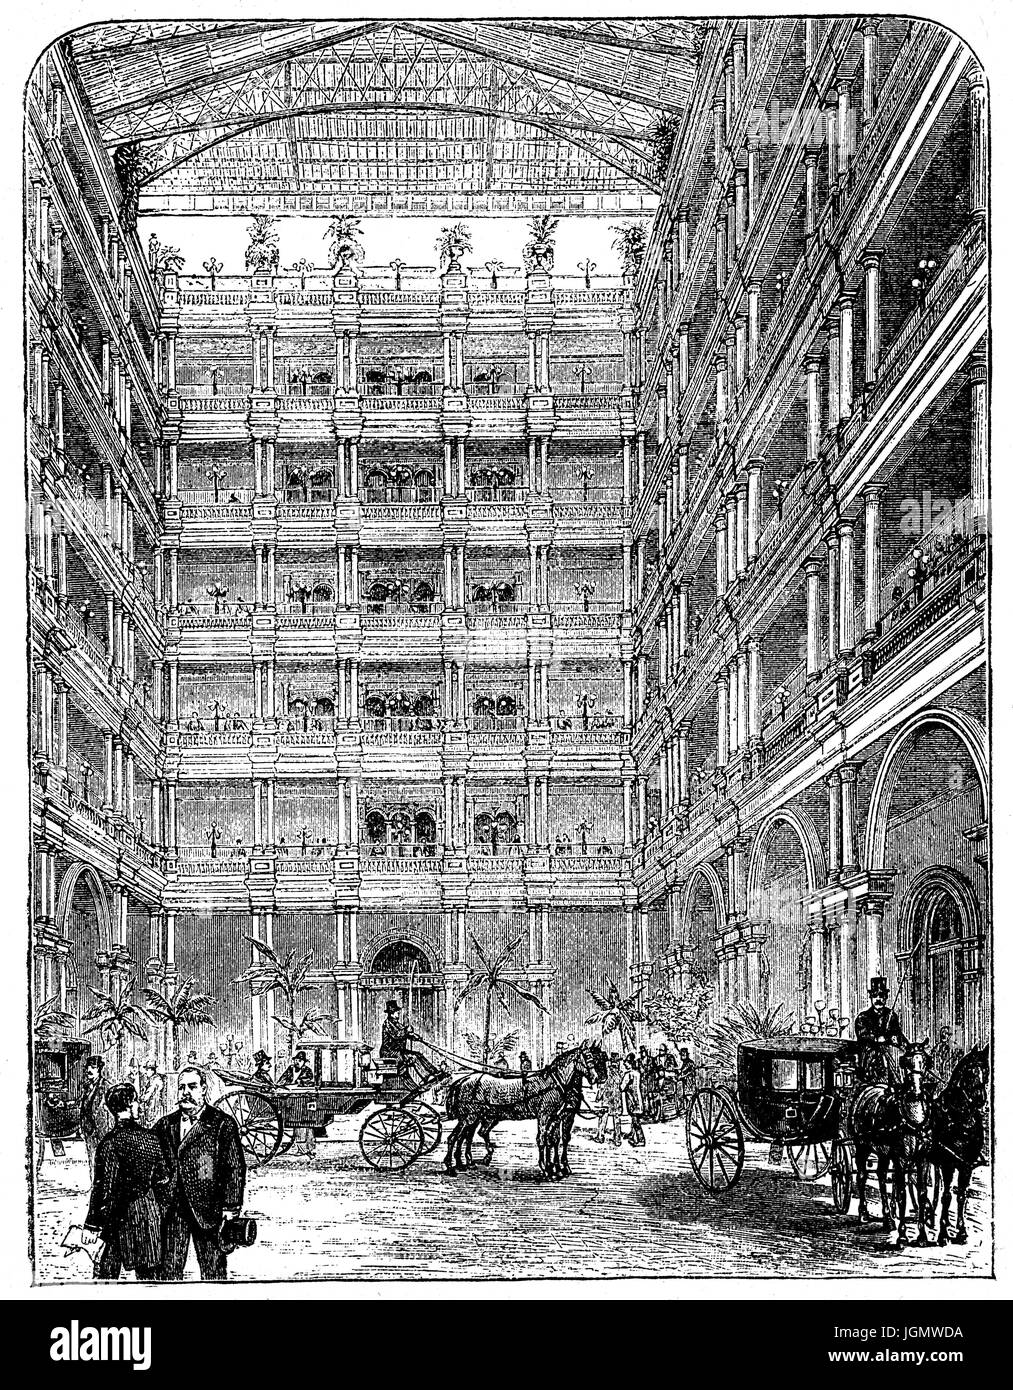 1879: The courtyard of the Palace Hotel, San Francisco, United States of America - Stock Image